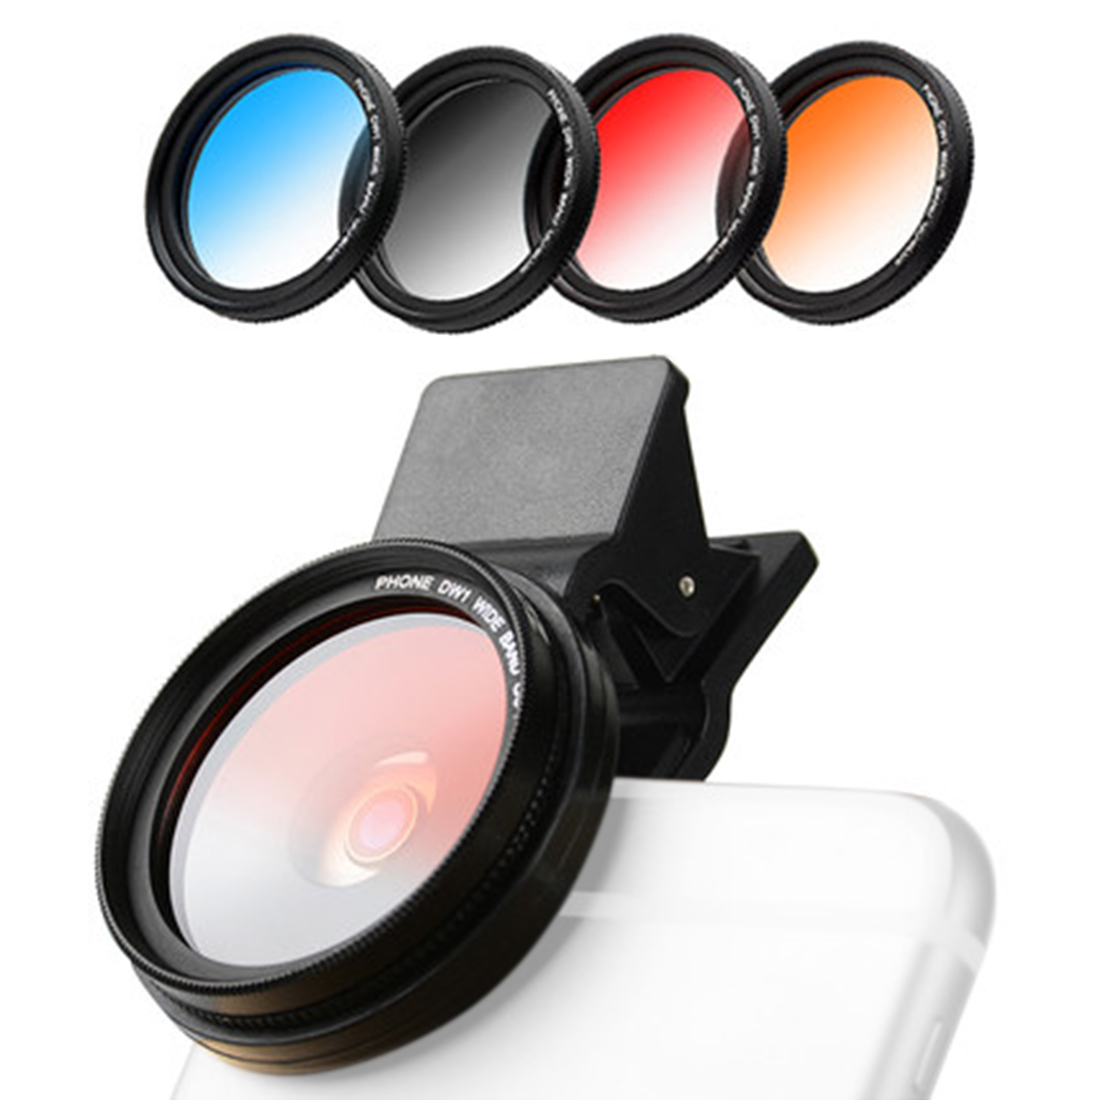 ZOMEI 4 In 1 37MM Mobile Phone Camera Filters Lens Graduated Grey Blue Orange Red Filters For IPhone 7S 6S Samsung Smartphone